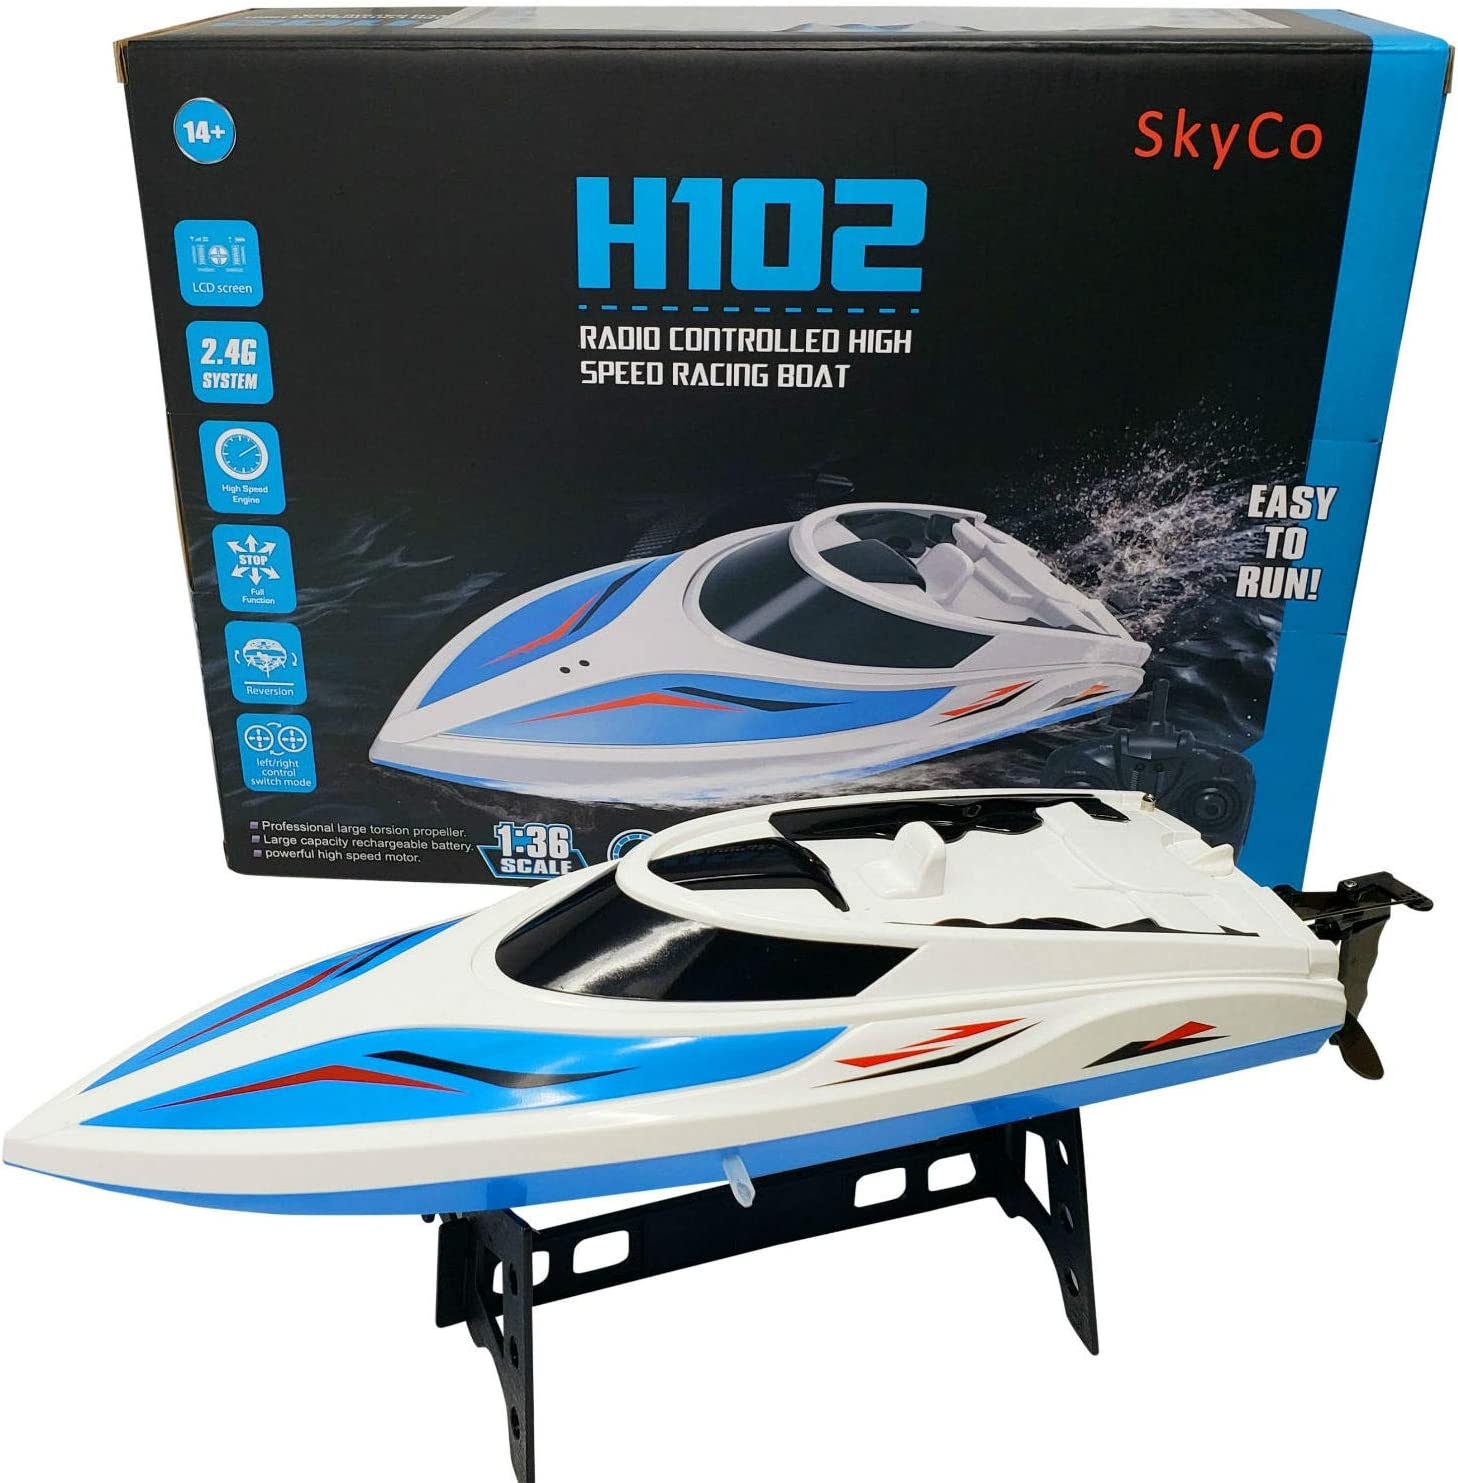 SkyCo Remote Control Boats for Pools and Lakes Rc Boat for Kids or Adults, Outdoor Adventure Pool Toys, High Speed Remote Control Boat Toy for Boys and Girls Bonus Extra Battery (Blue)